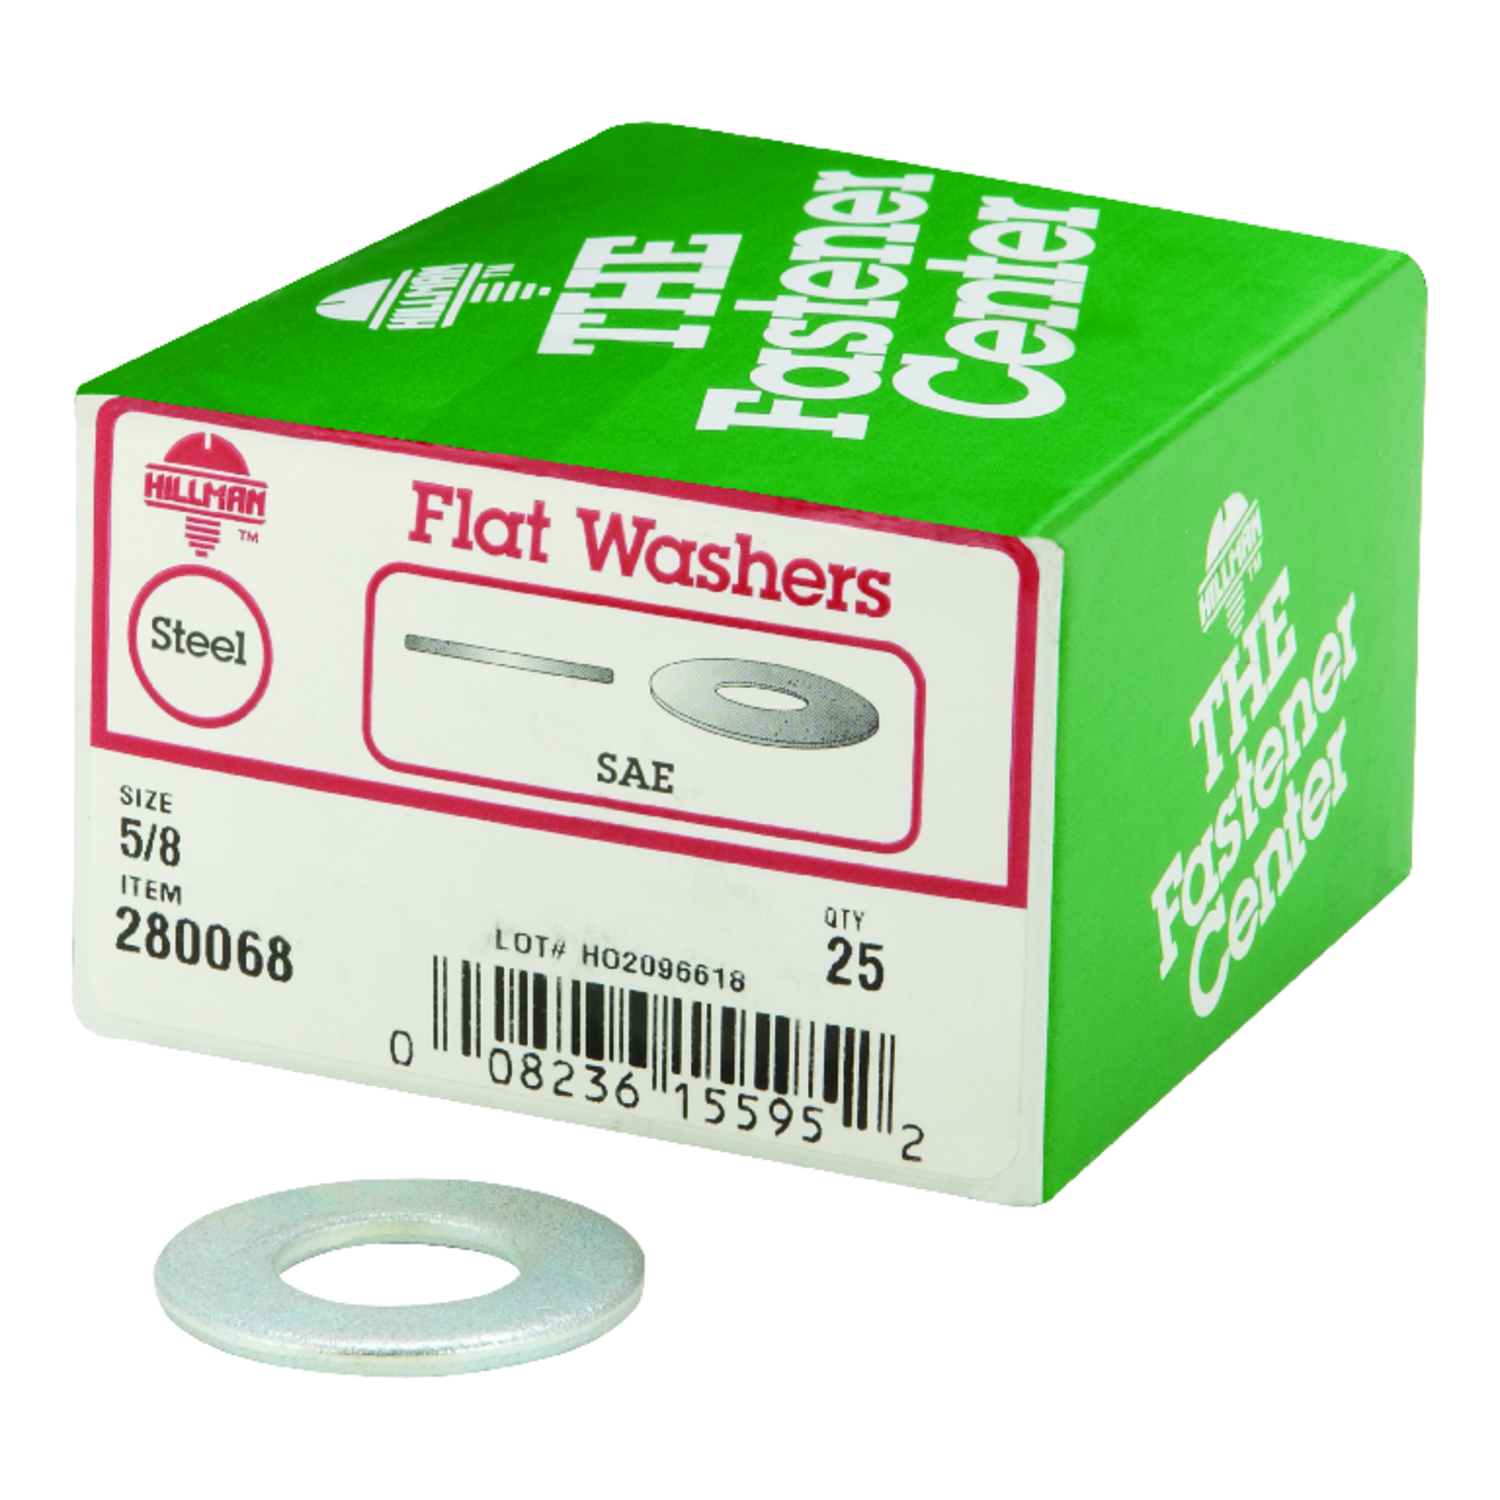 HILLMAN  Zinc-Plated  Stainless Steel  5/8 in. SAE Flat Washer  25 pk